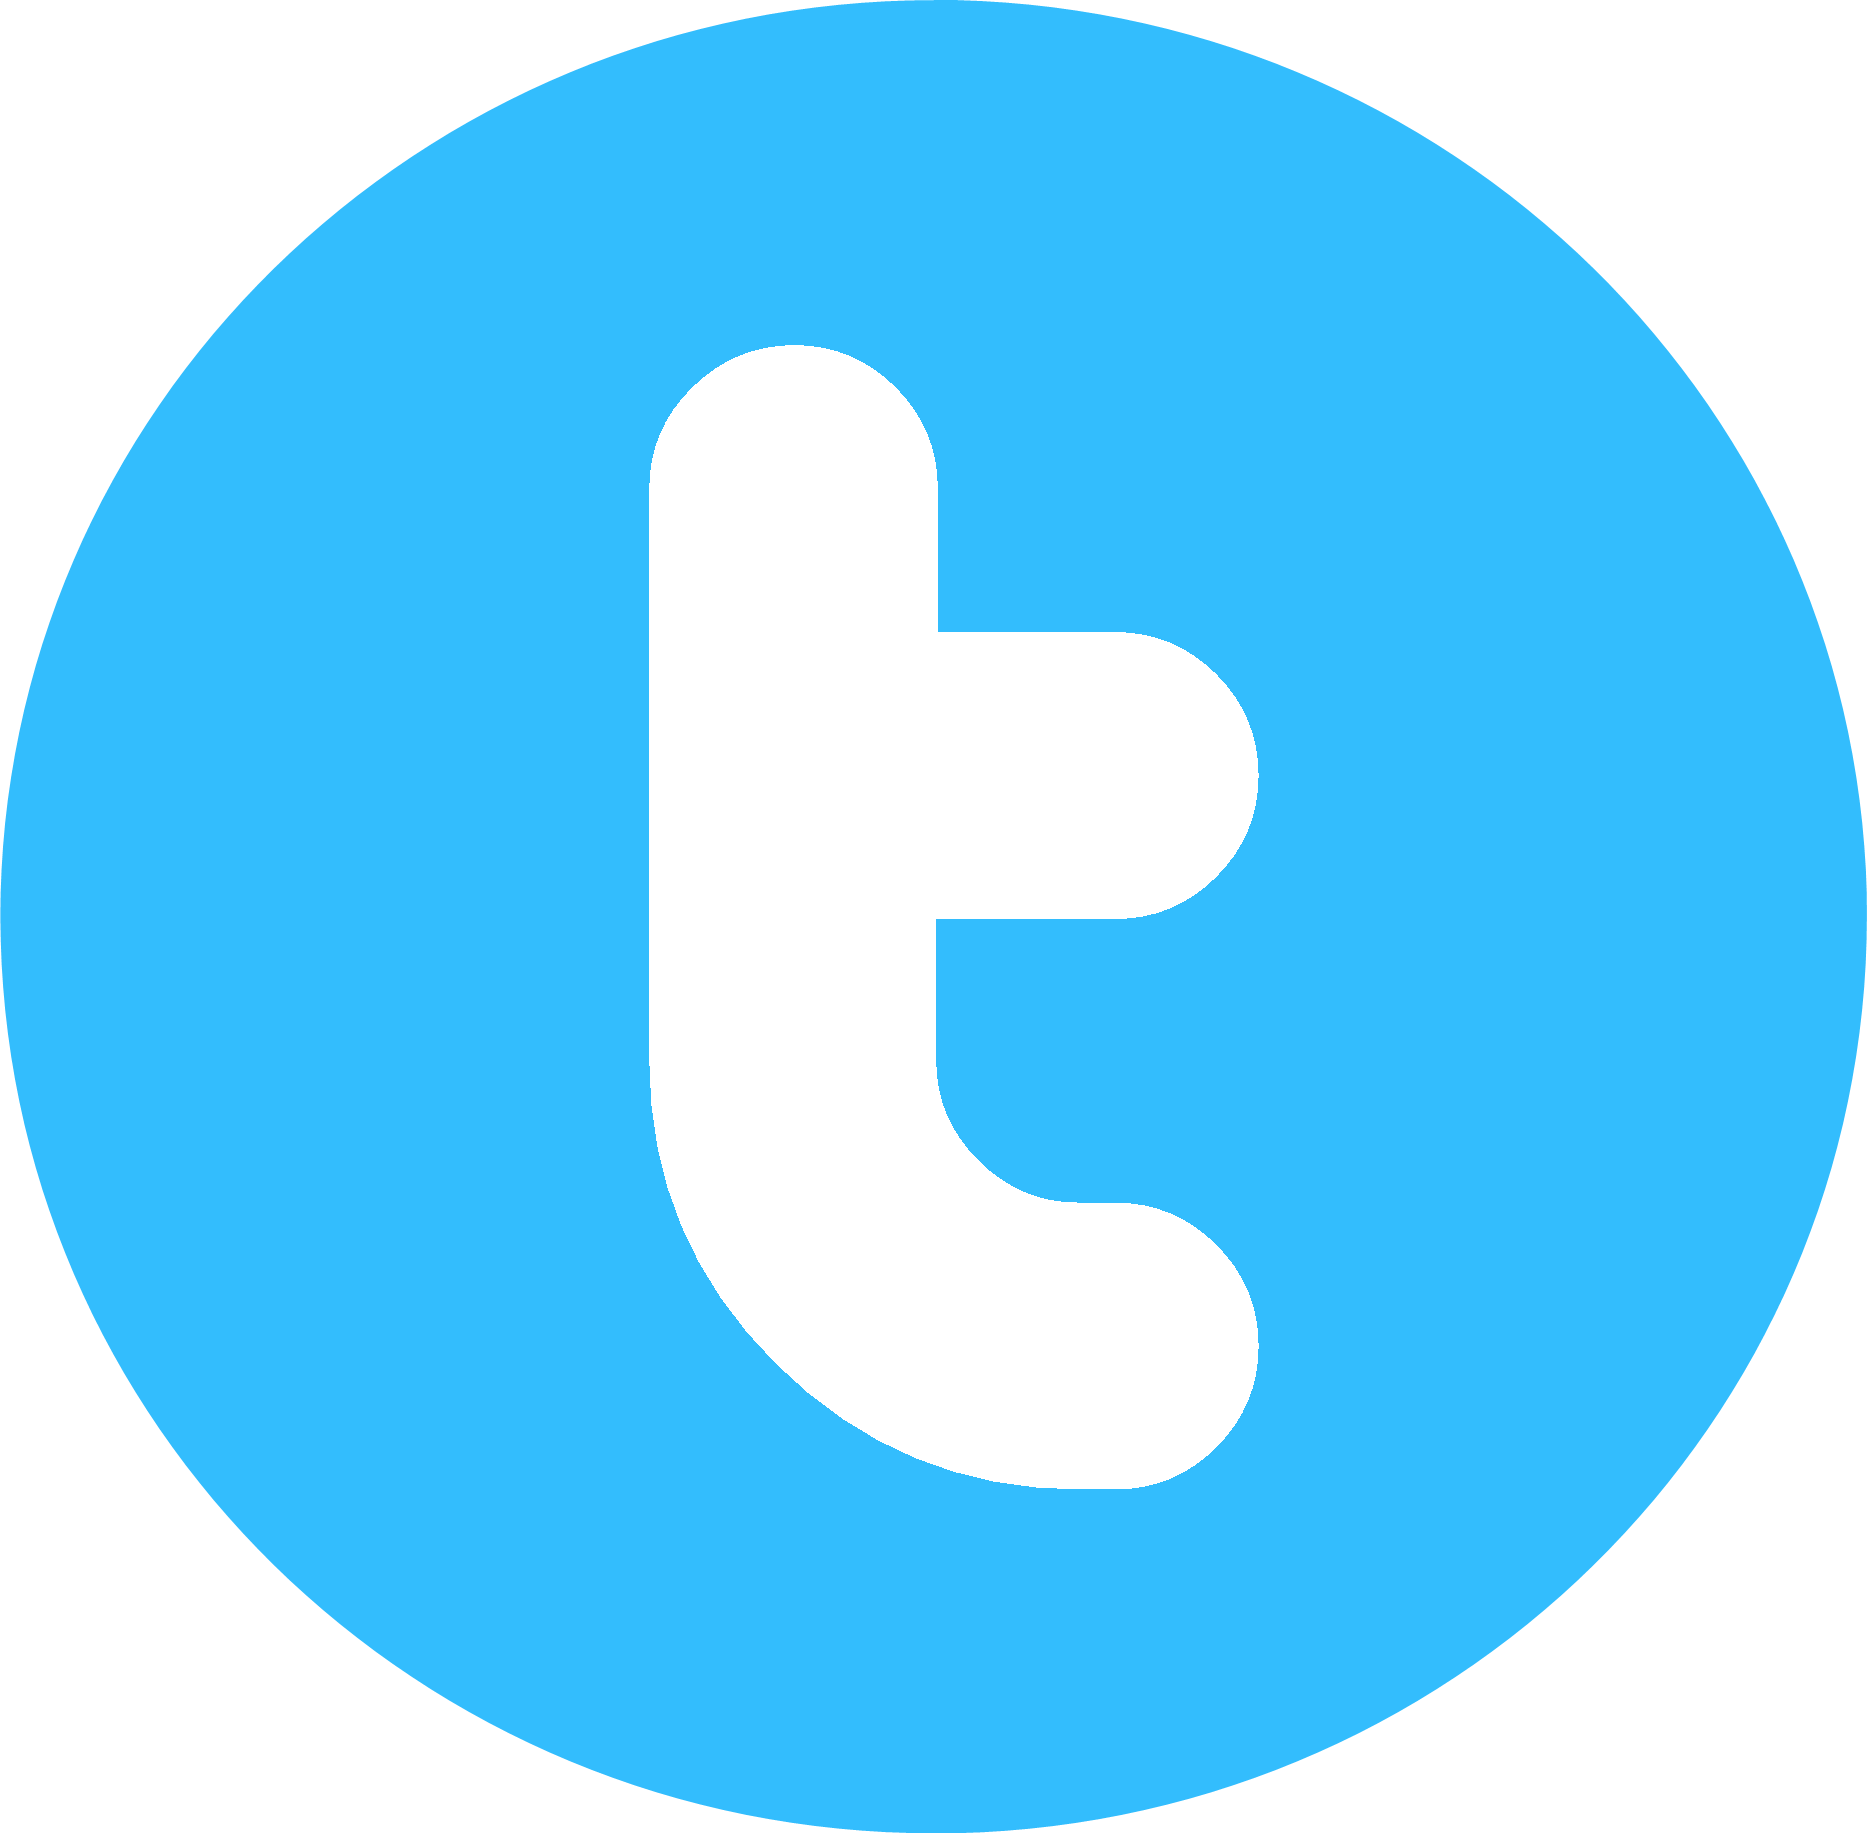 Twitter png logo. Transparent images all highquality